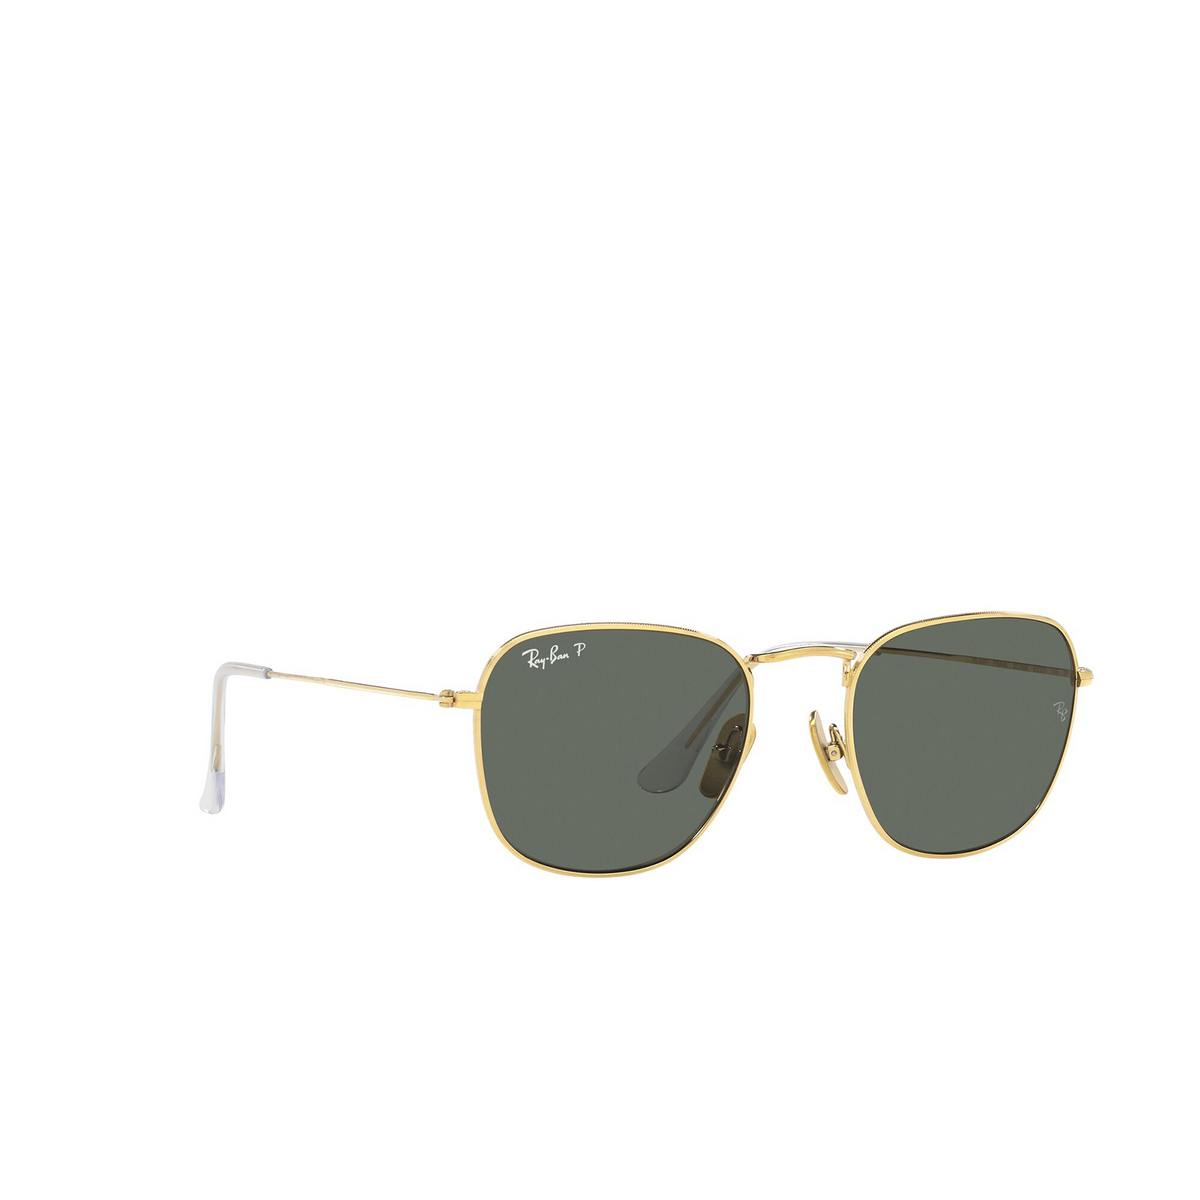 Ray-Ban® Square Sunglasses: Frank RB8157 color Legend Gold 921658 - three-quarters view.